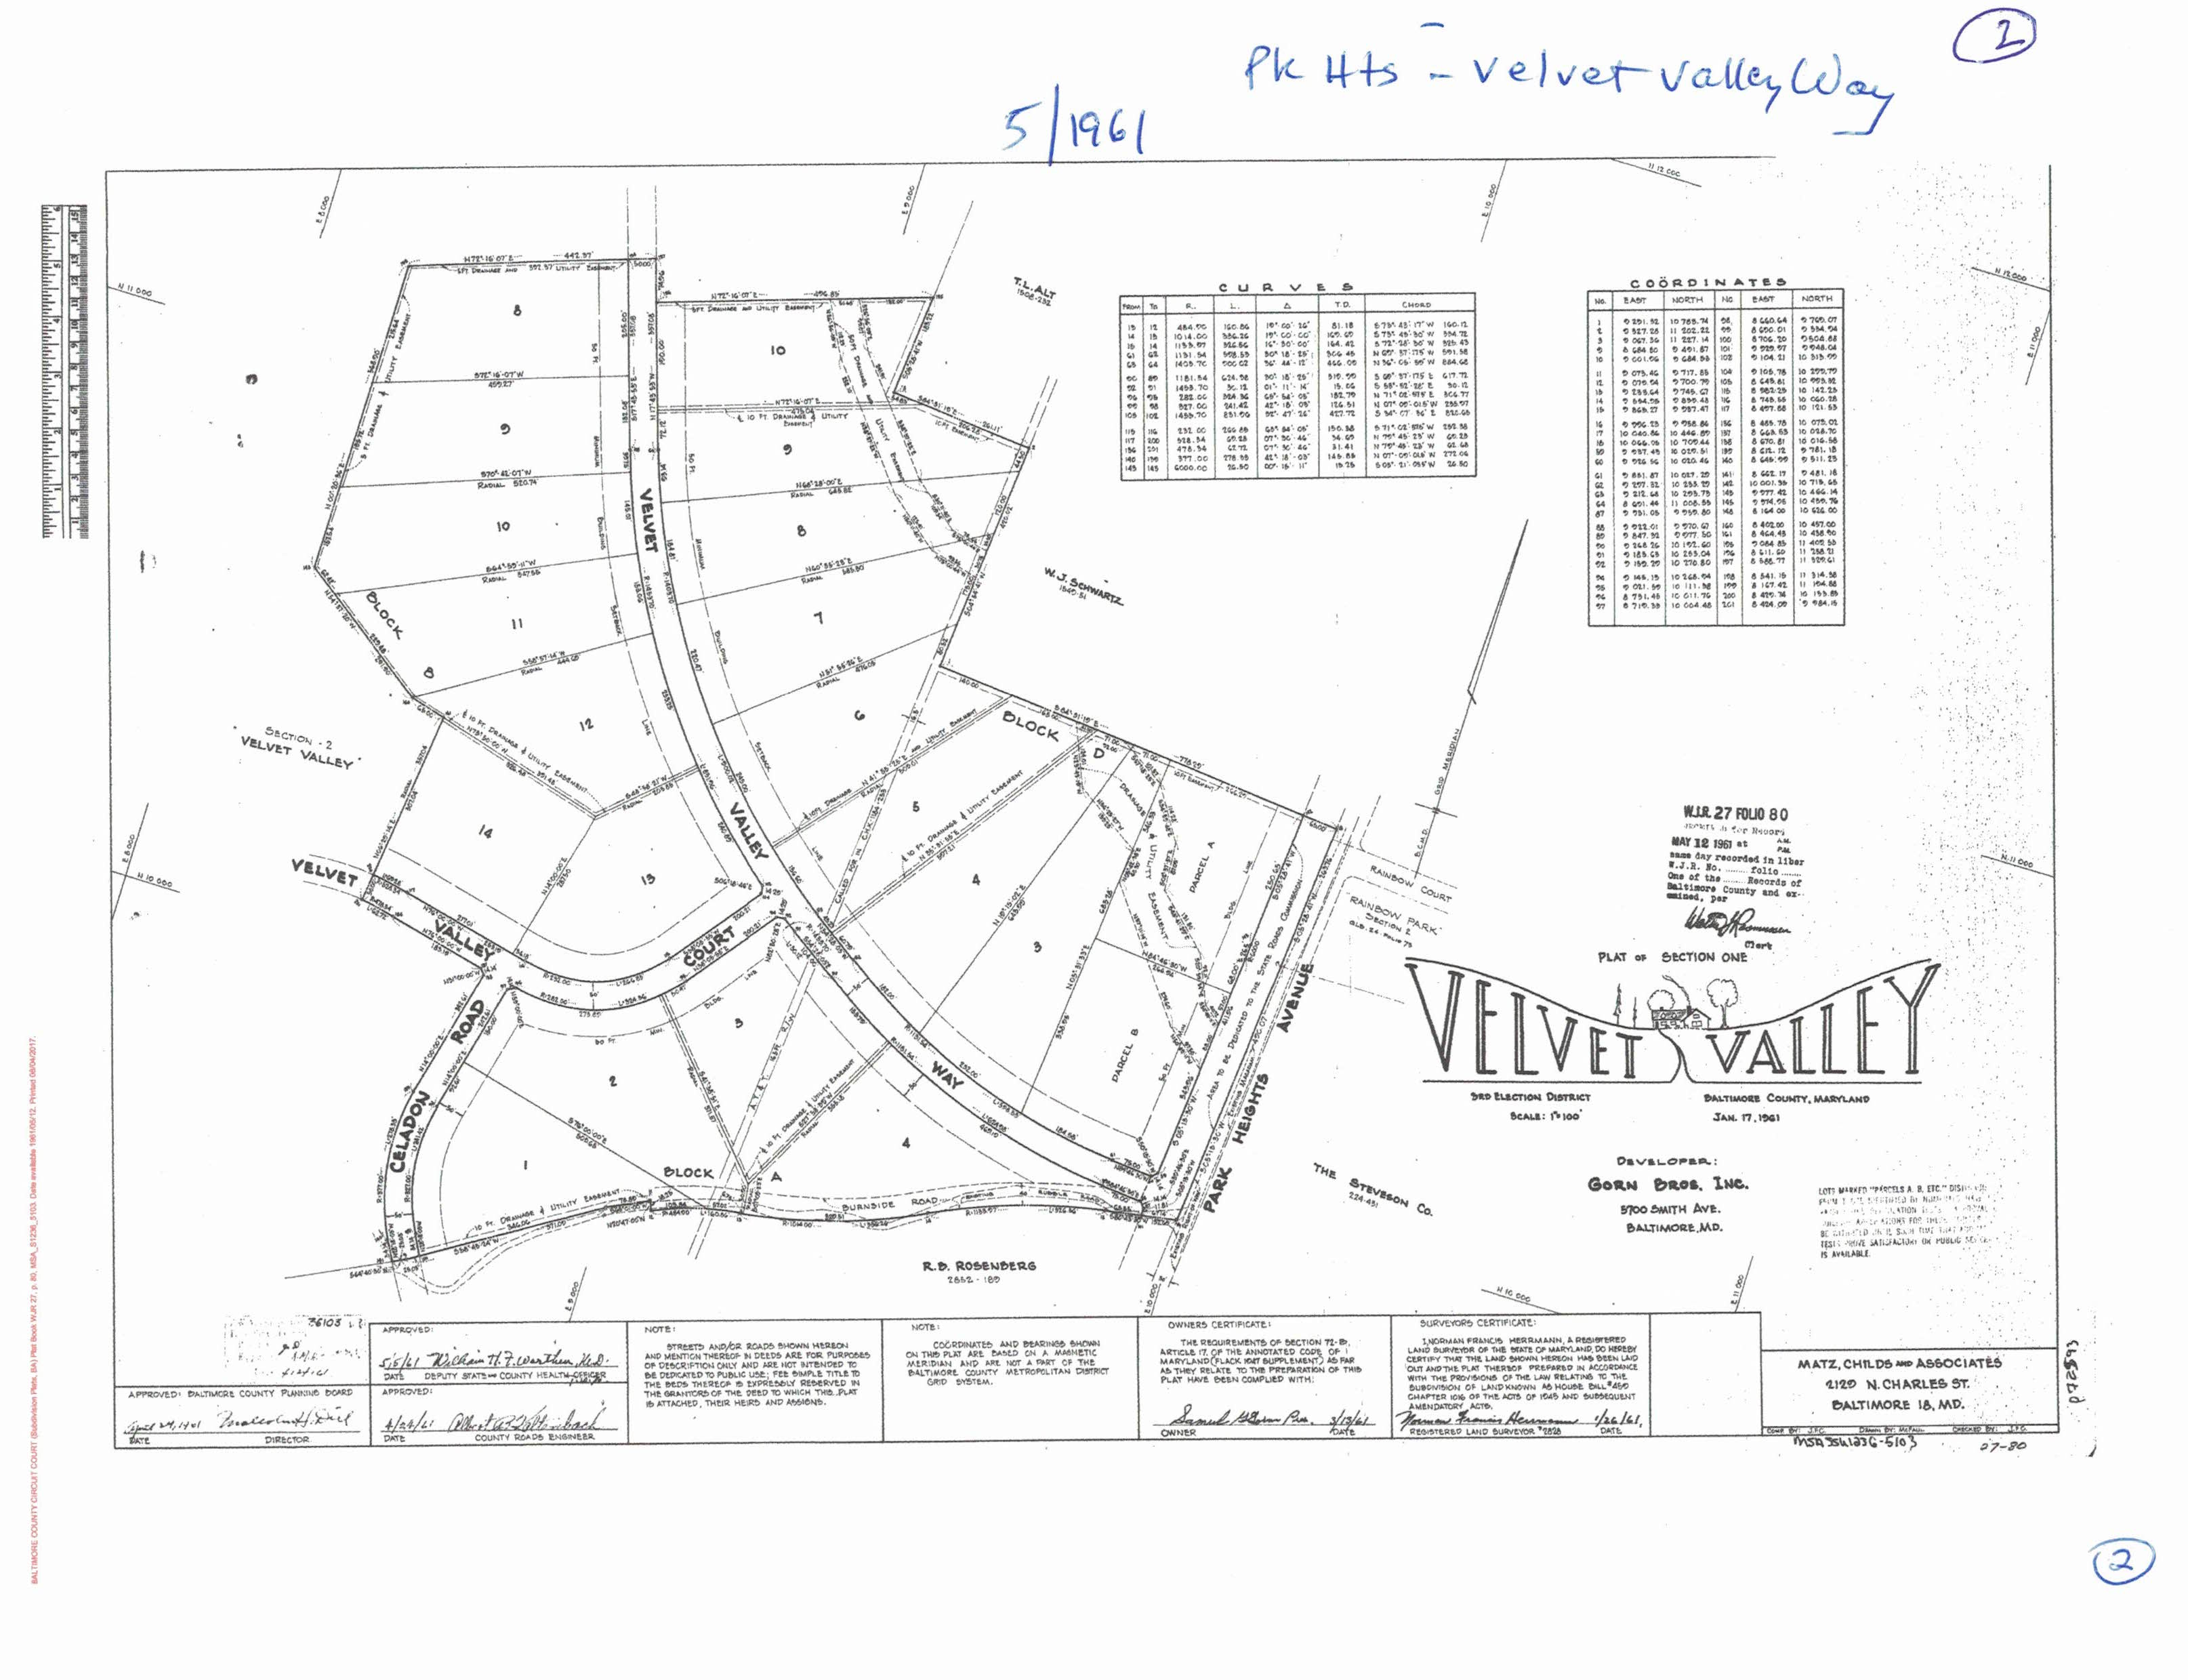 Early Velvet Valley Way approved development plan, May 1961